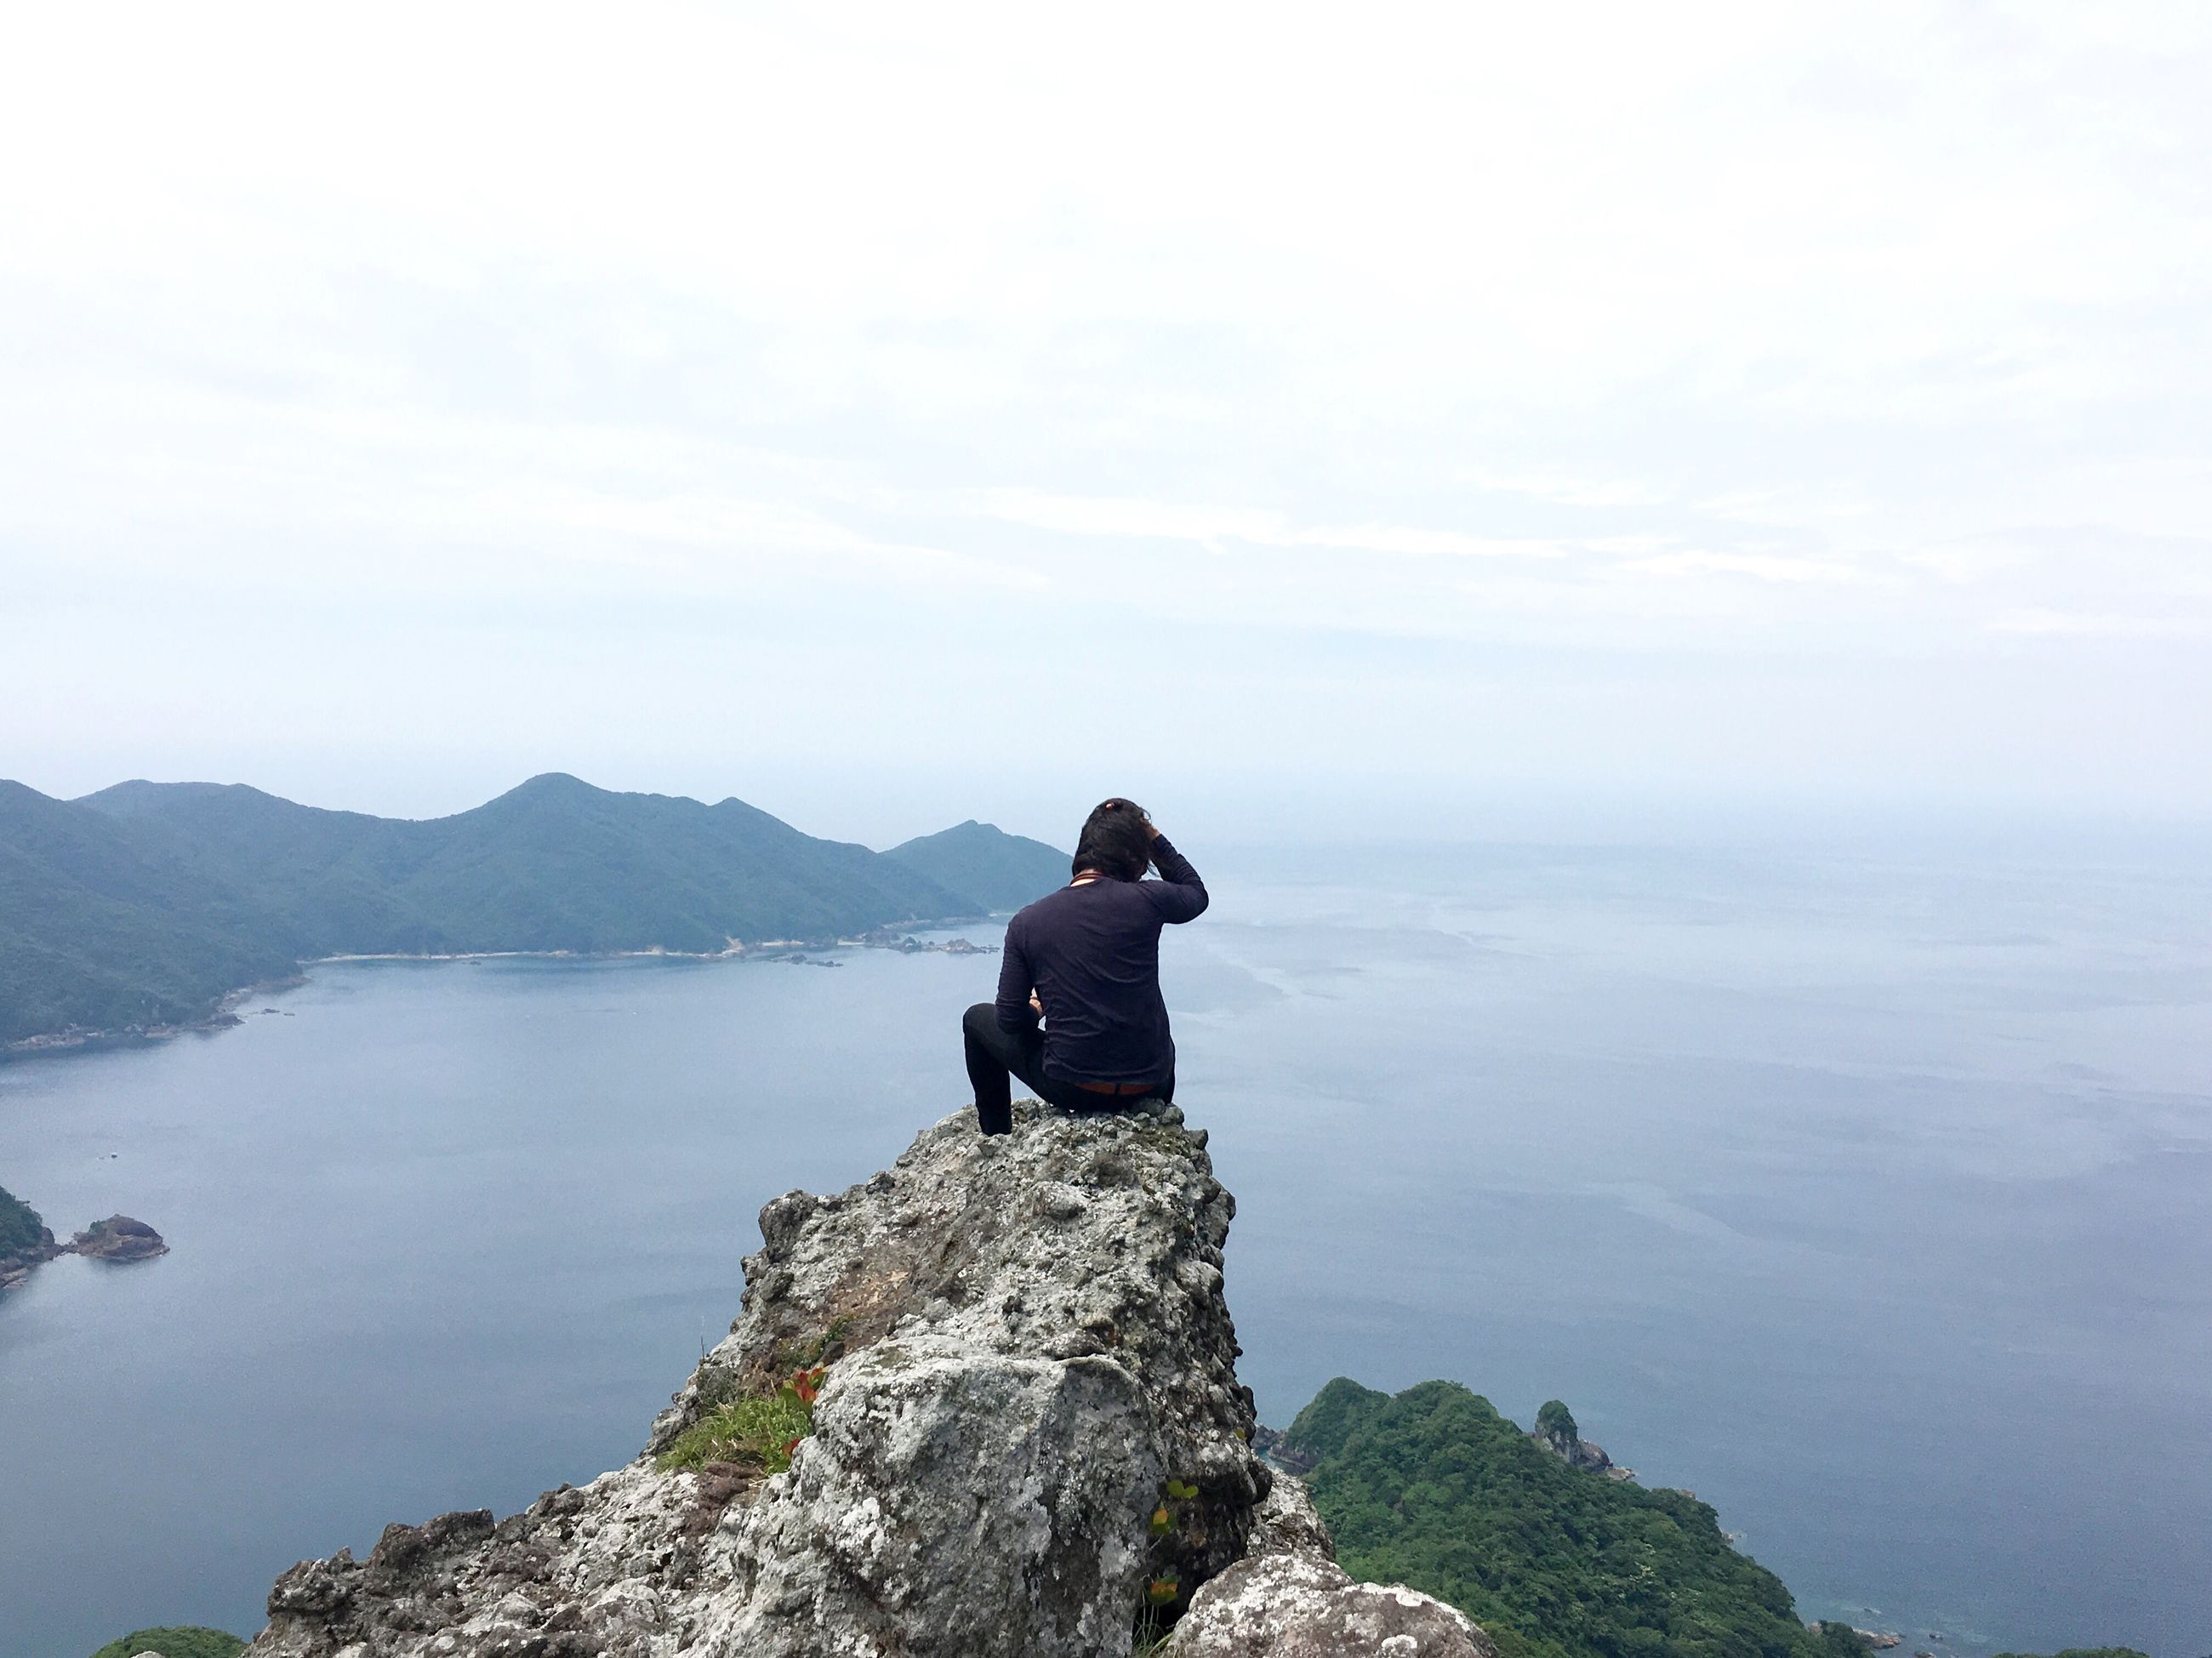 water, mountain, lifestyles, tranquil scene, standing, tranquility, leisure activity, scenics, beauty in nature, sky, rear view, sea, nature, getting away from it all, full length, looking at view, rock - object, three quarter length